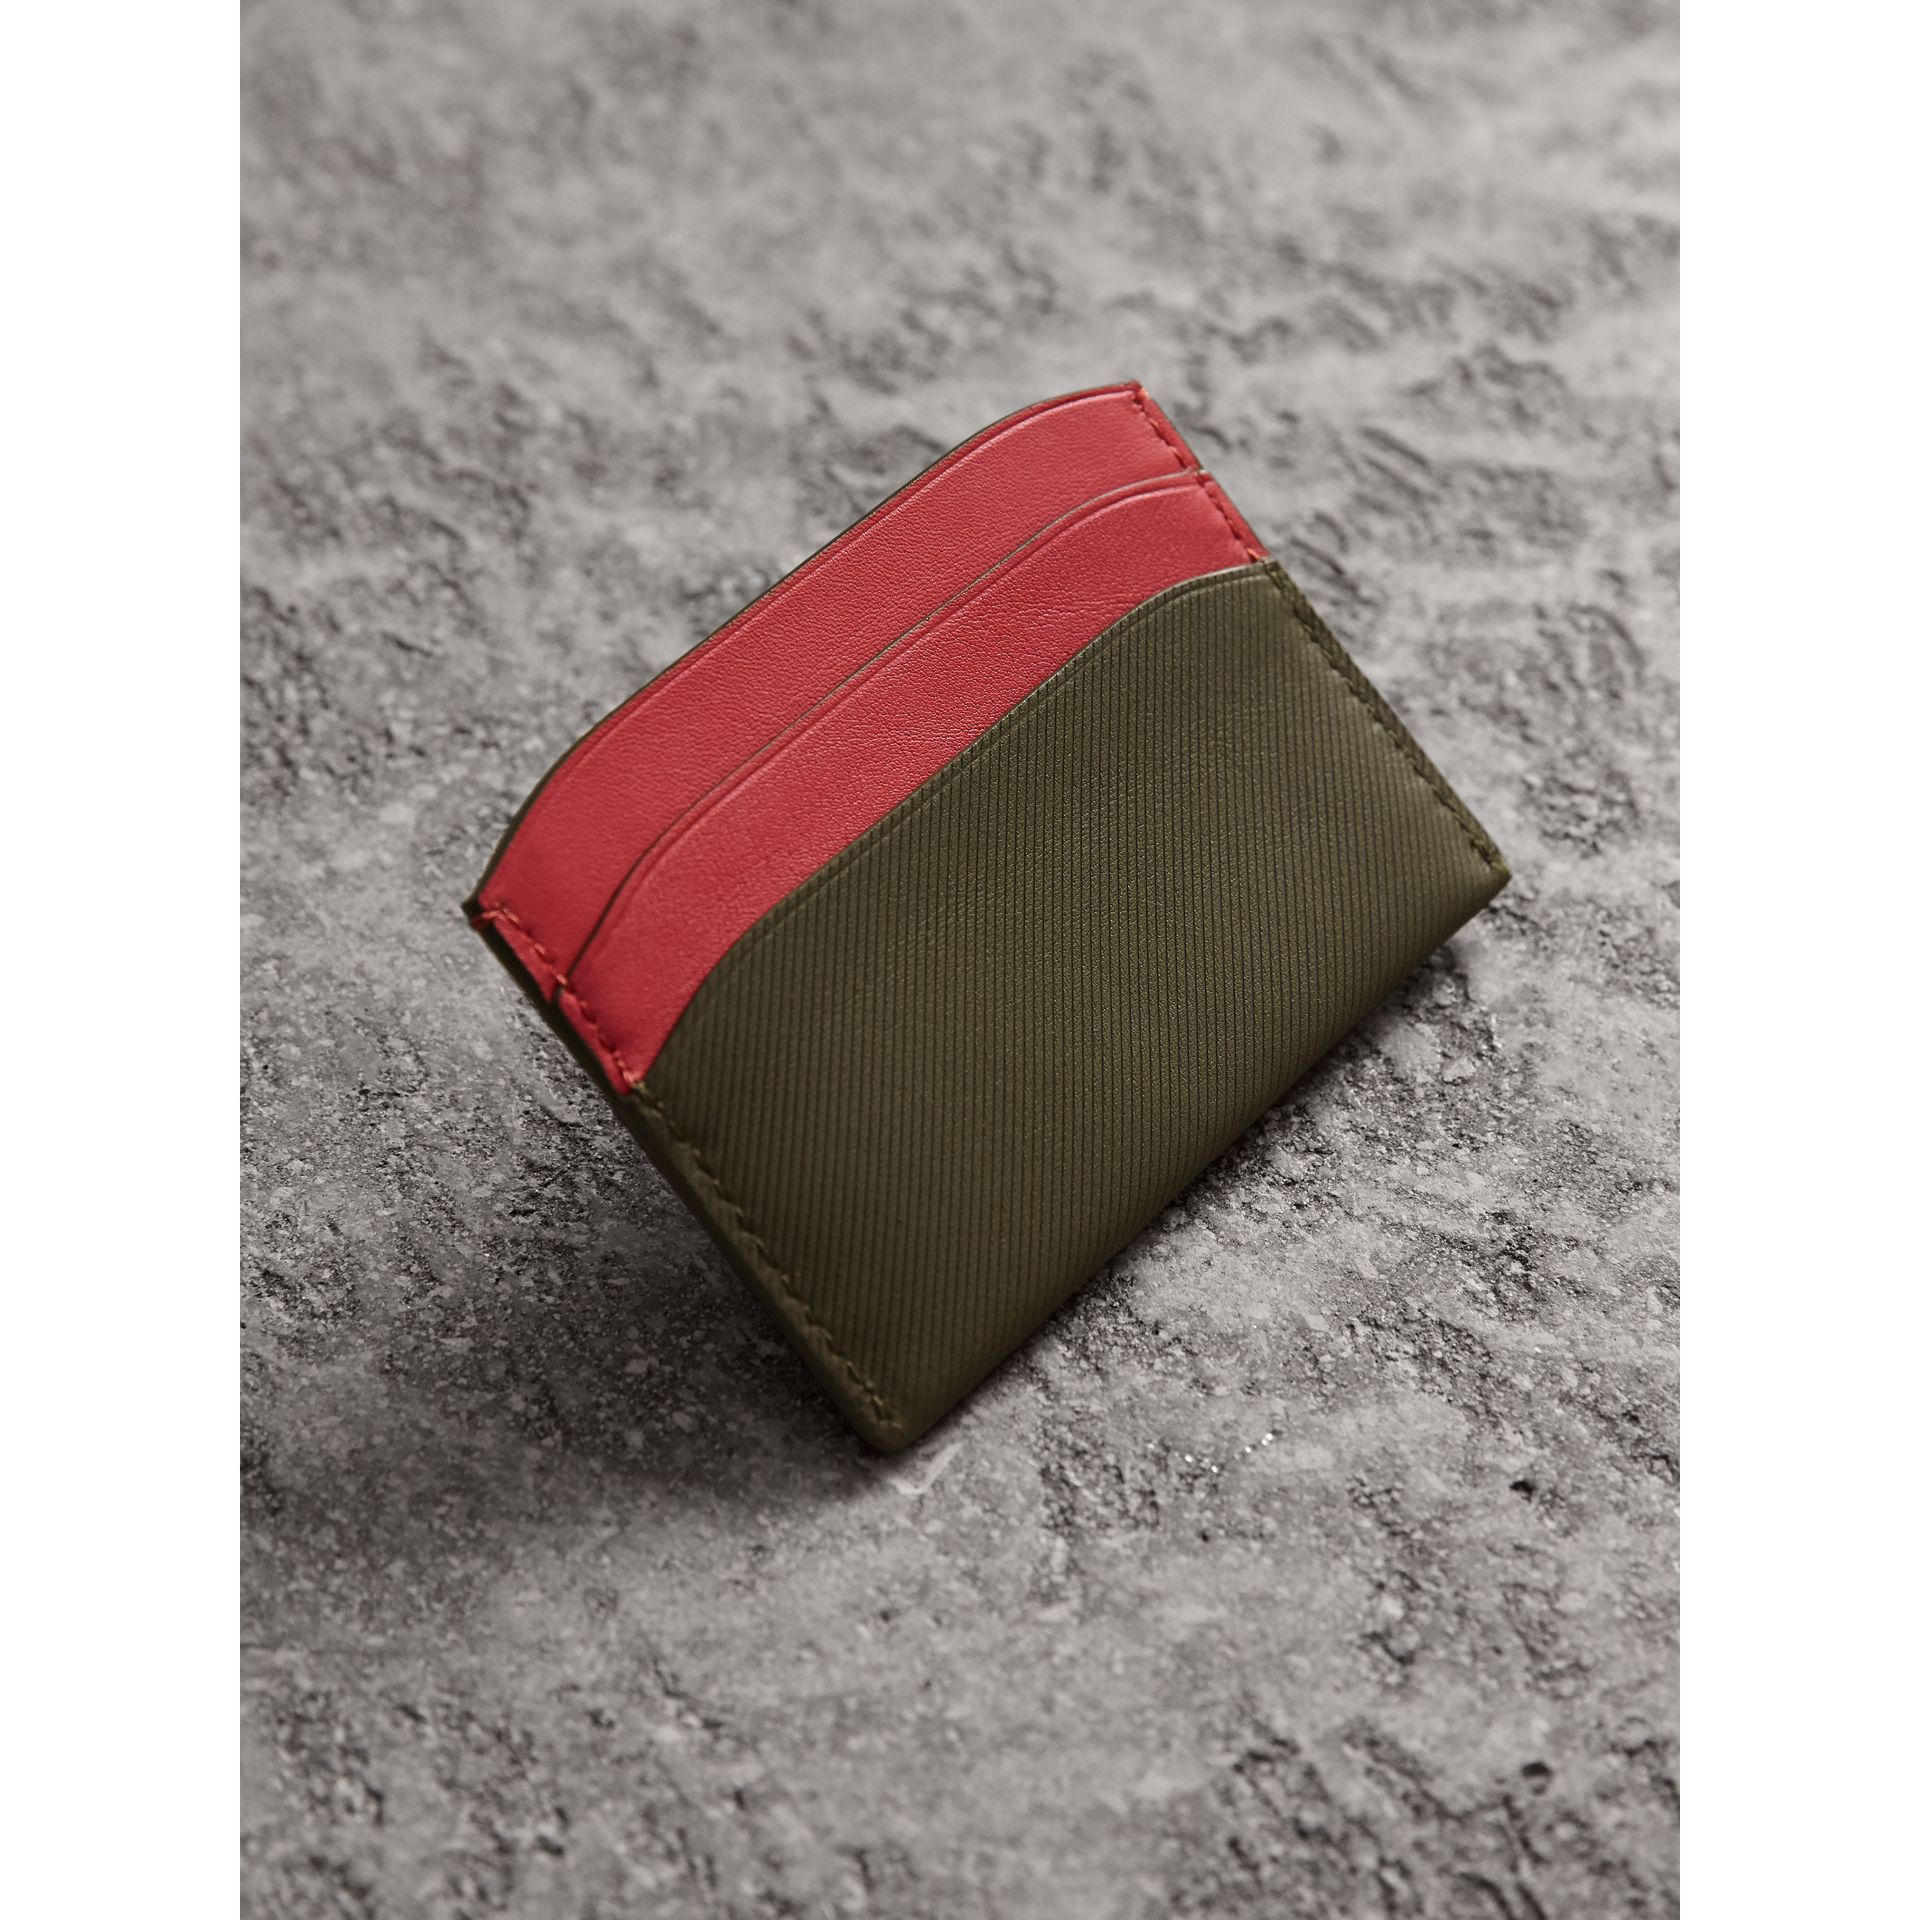 Two-tone Trench Leather Card Case in Mss Green/ Blsm Pink - Women | Burberry United States - gallery image 2